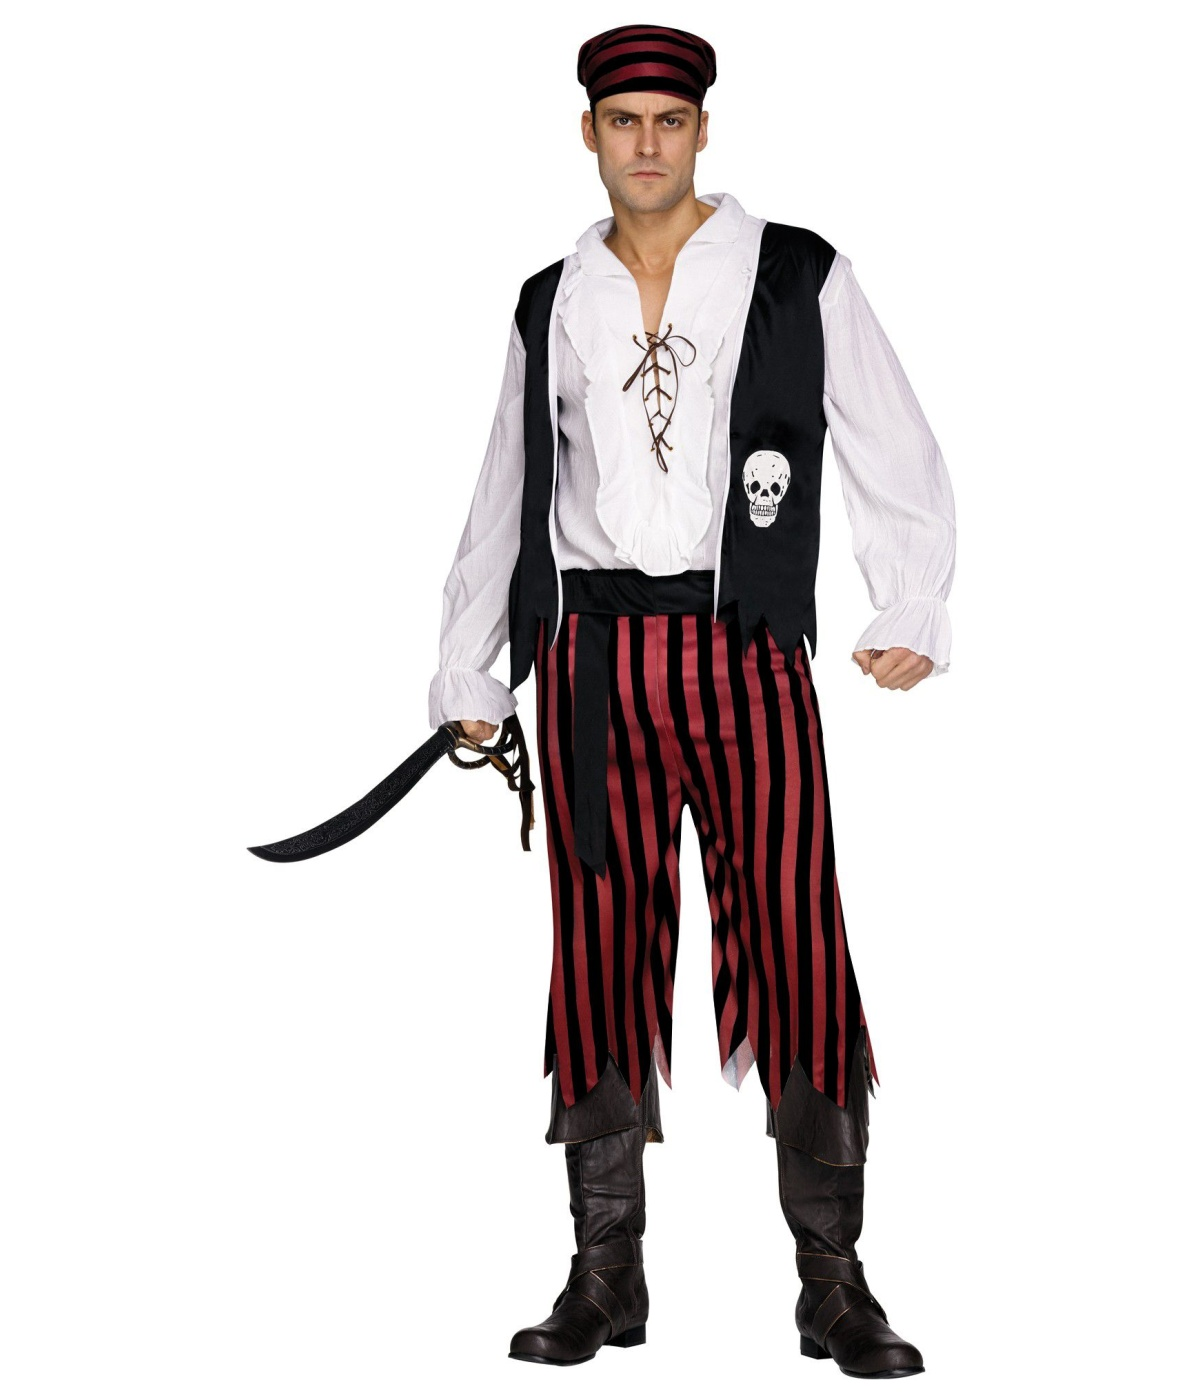 Traditional Red And Black Buccaneer Pirate Men Costume  sc 1 st  Wonder Costumes & Traditional Red and Black Buccaneer Pirate Men Costume - Pirate Costumes